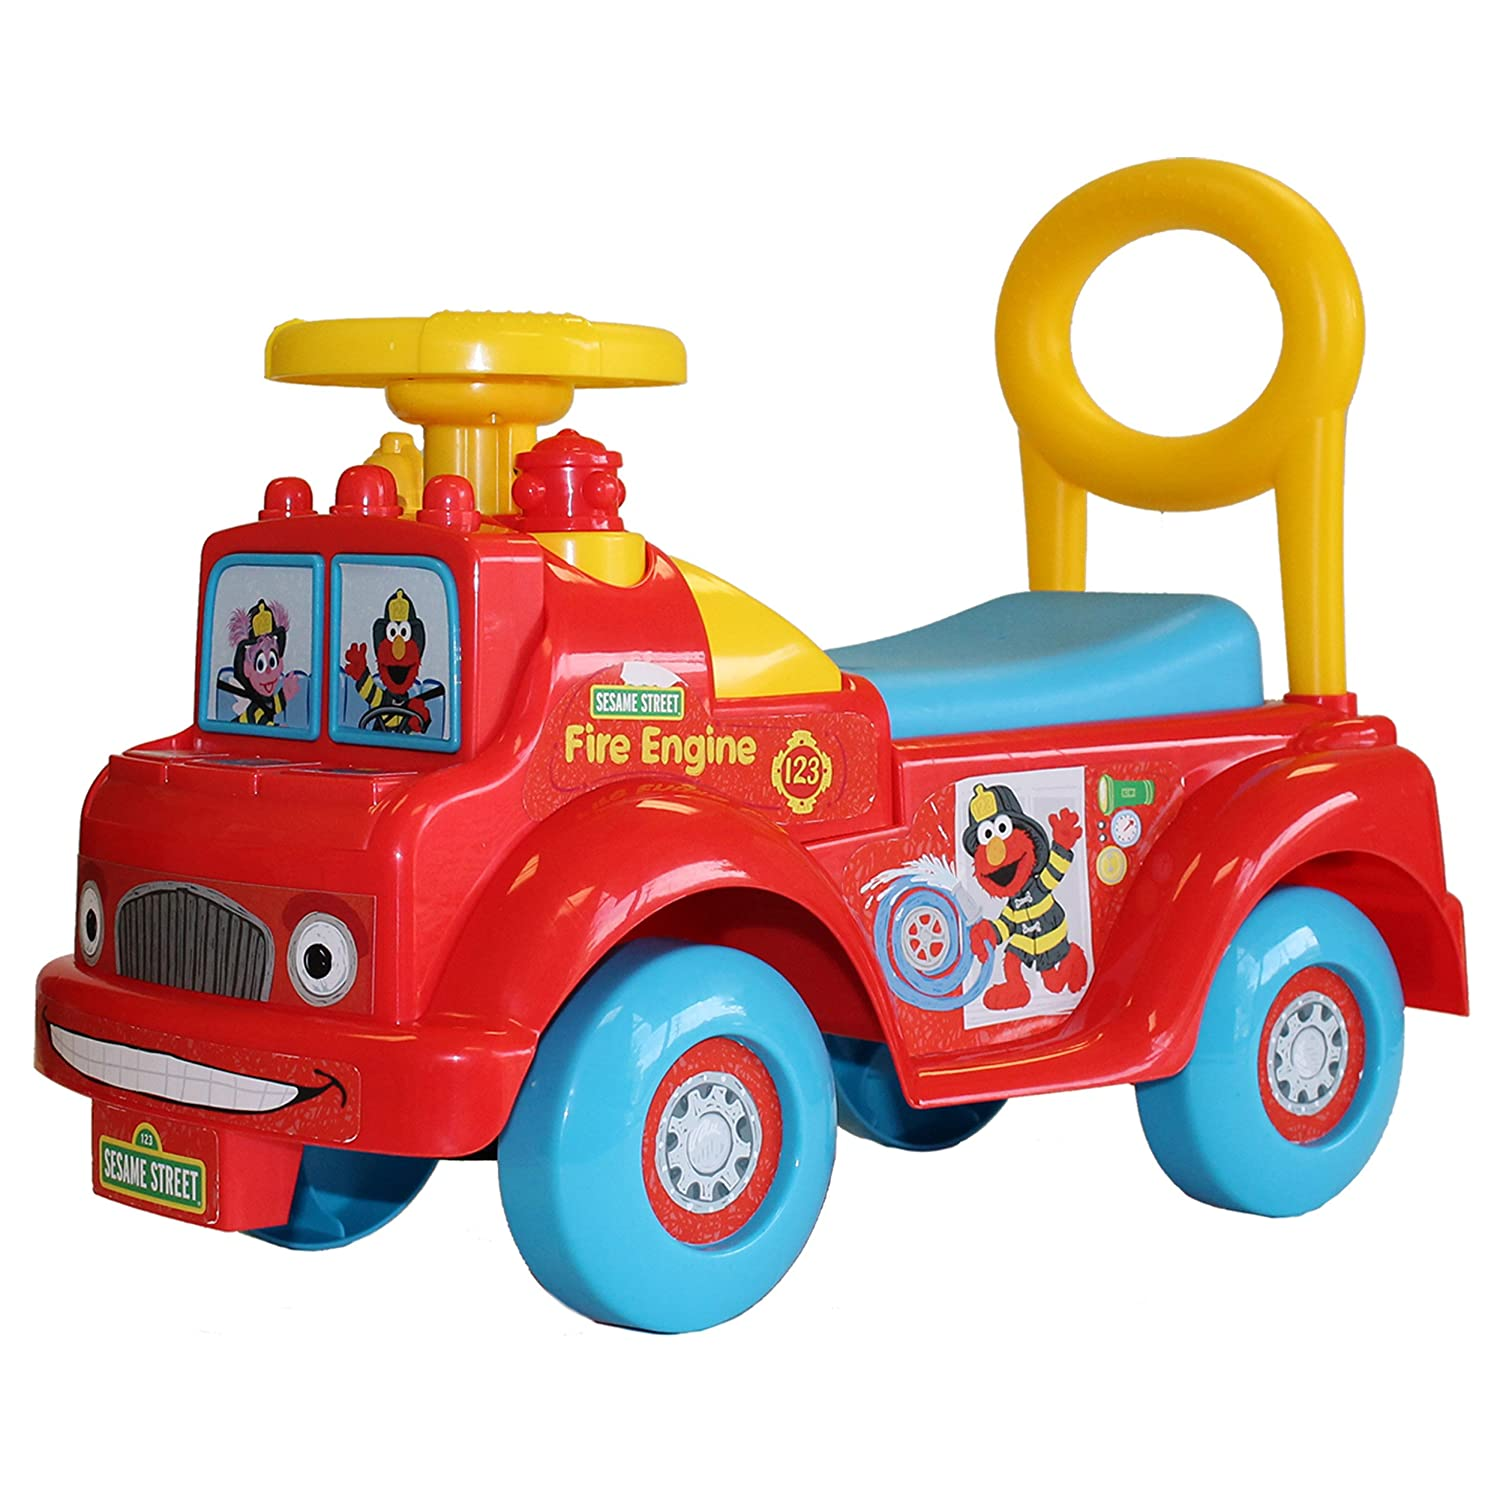 Toys That Are Cool : Cool toys for year old boys birthday christmas